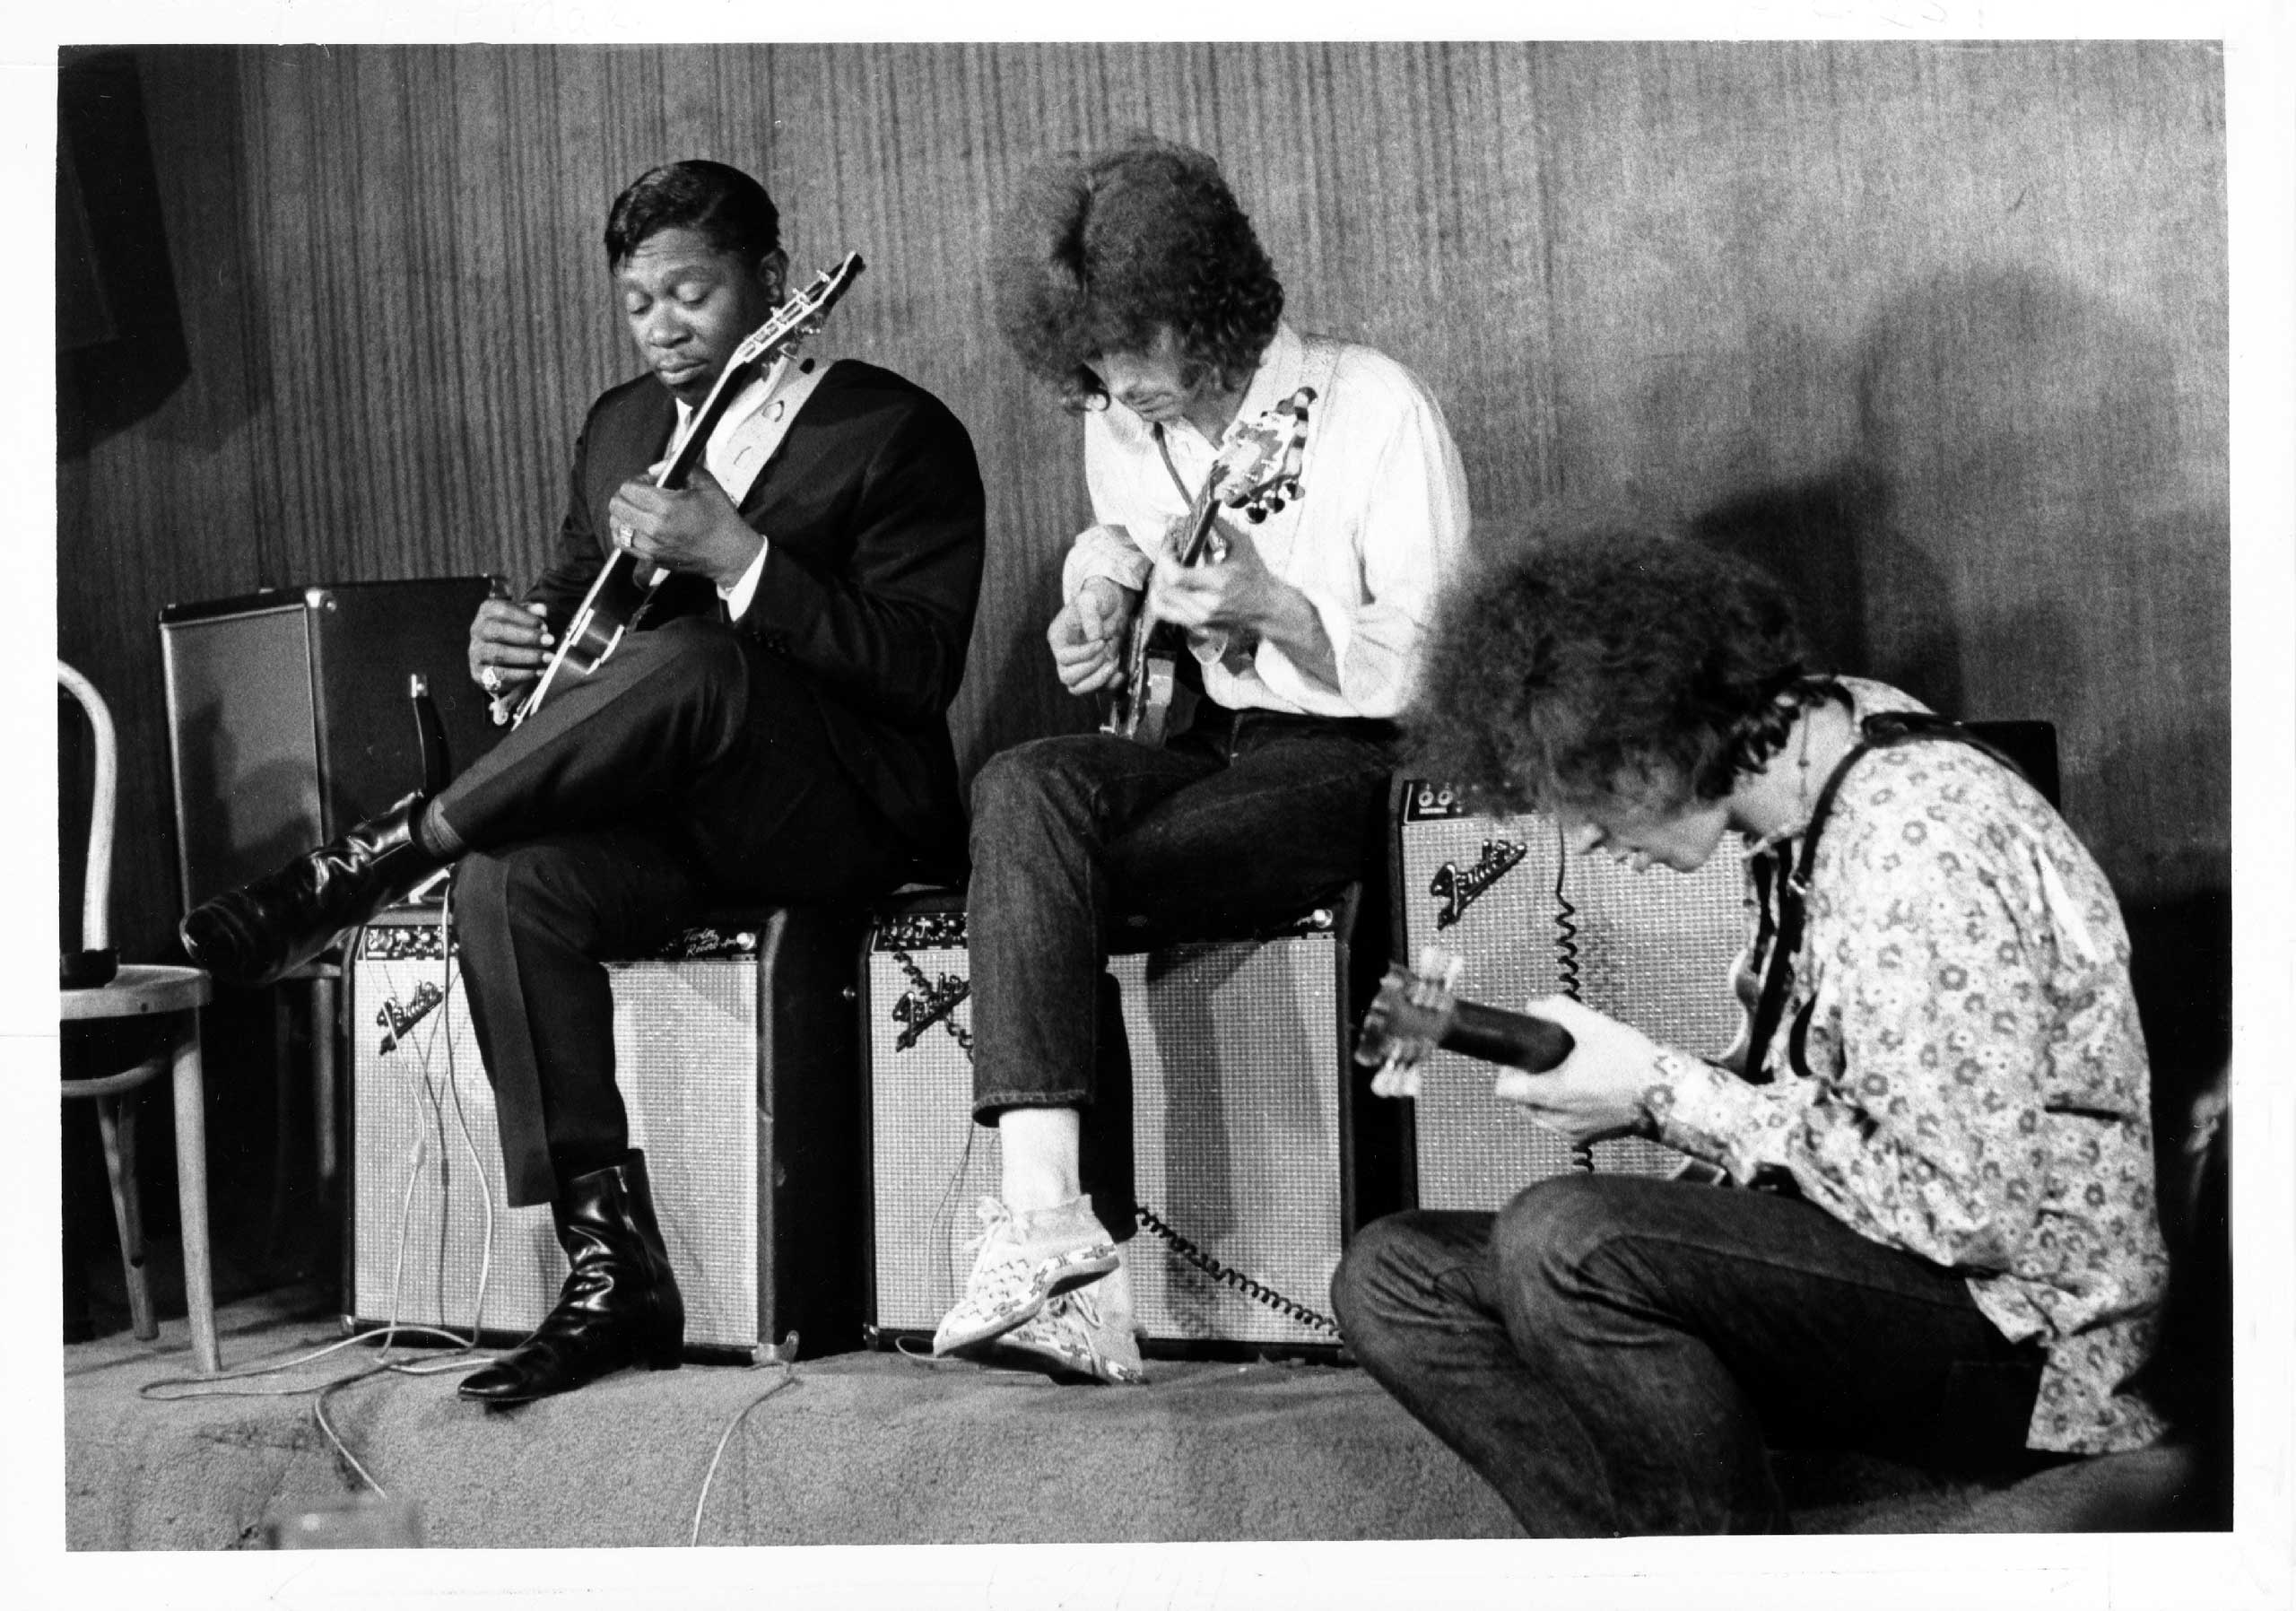 From Left: Musicians B.B. King, Eric Clapton and Elvin Bishop perform together in 1967 in New York City.